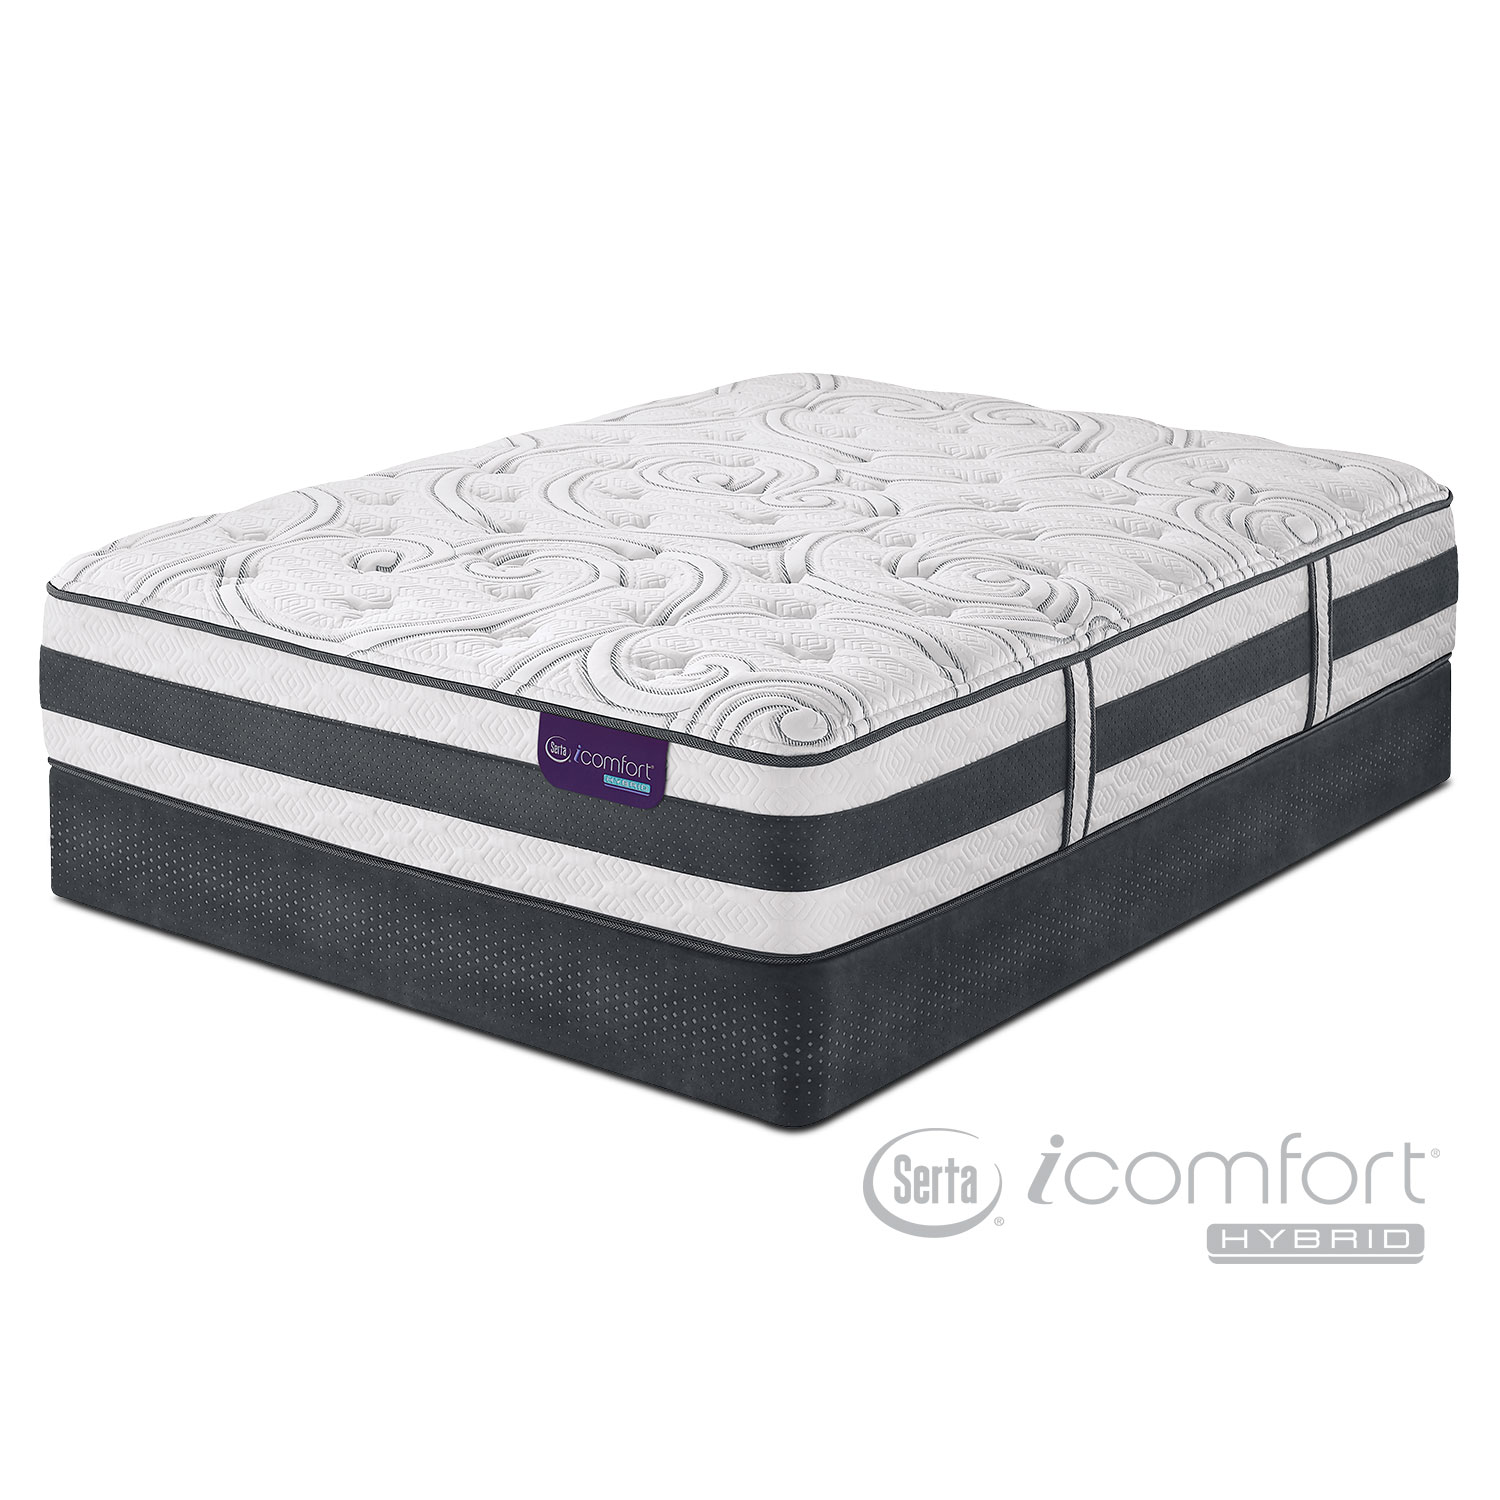 Applause II Plush California King Mattress/Split Foundation Set